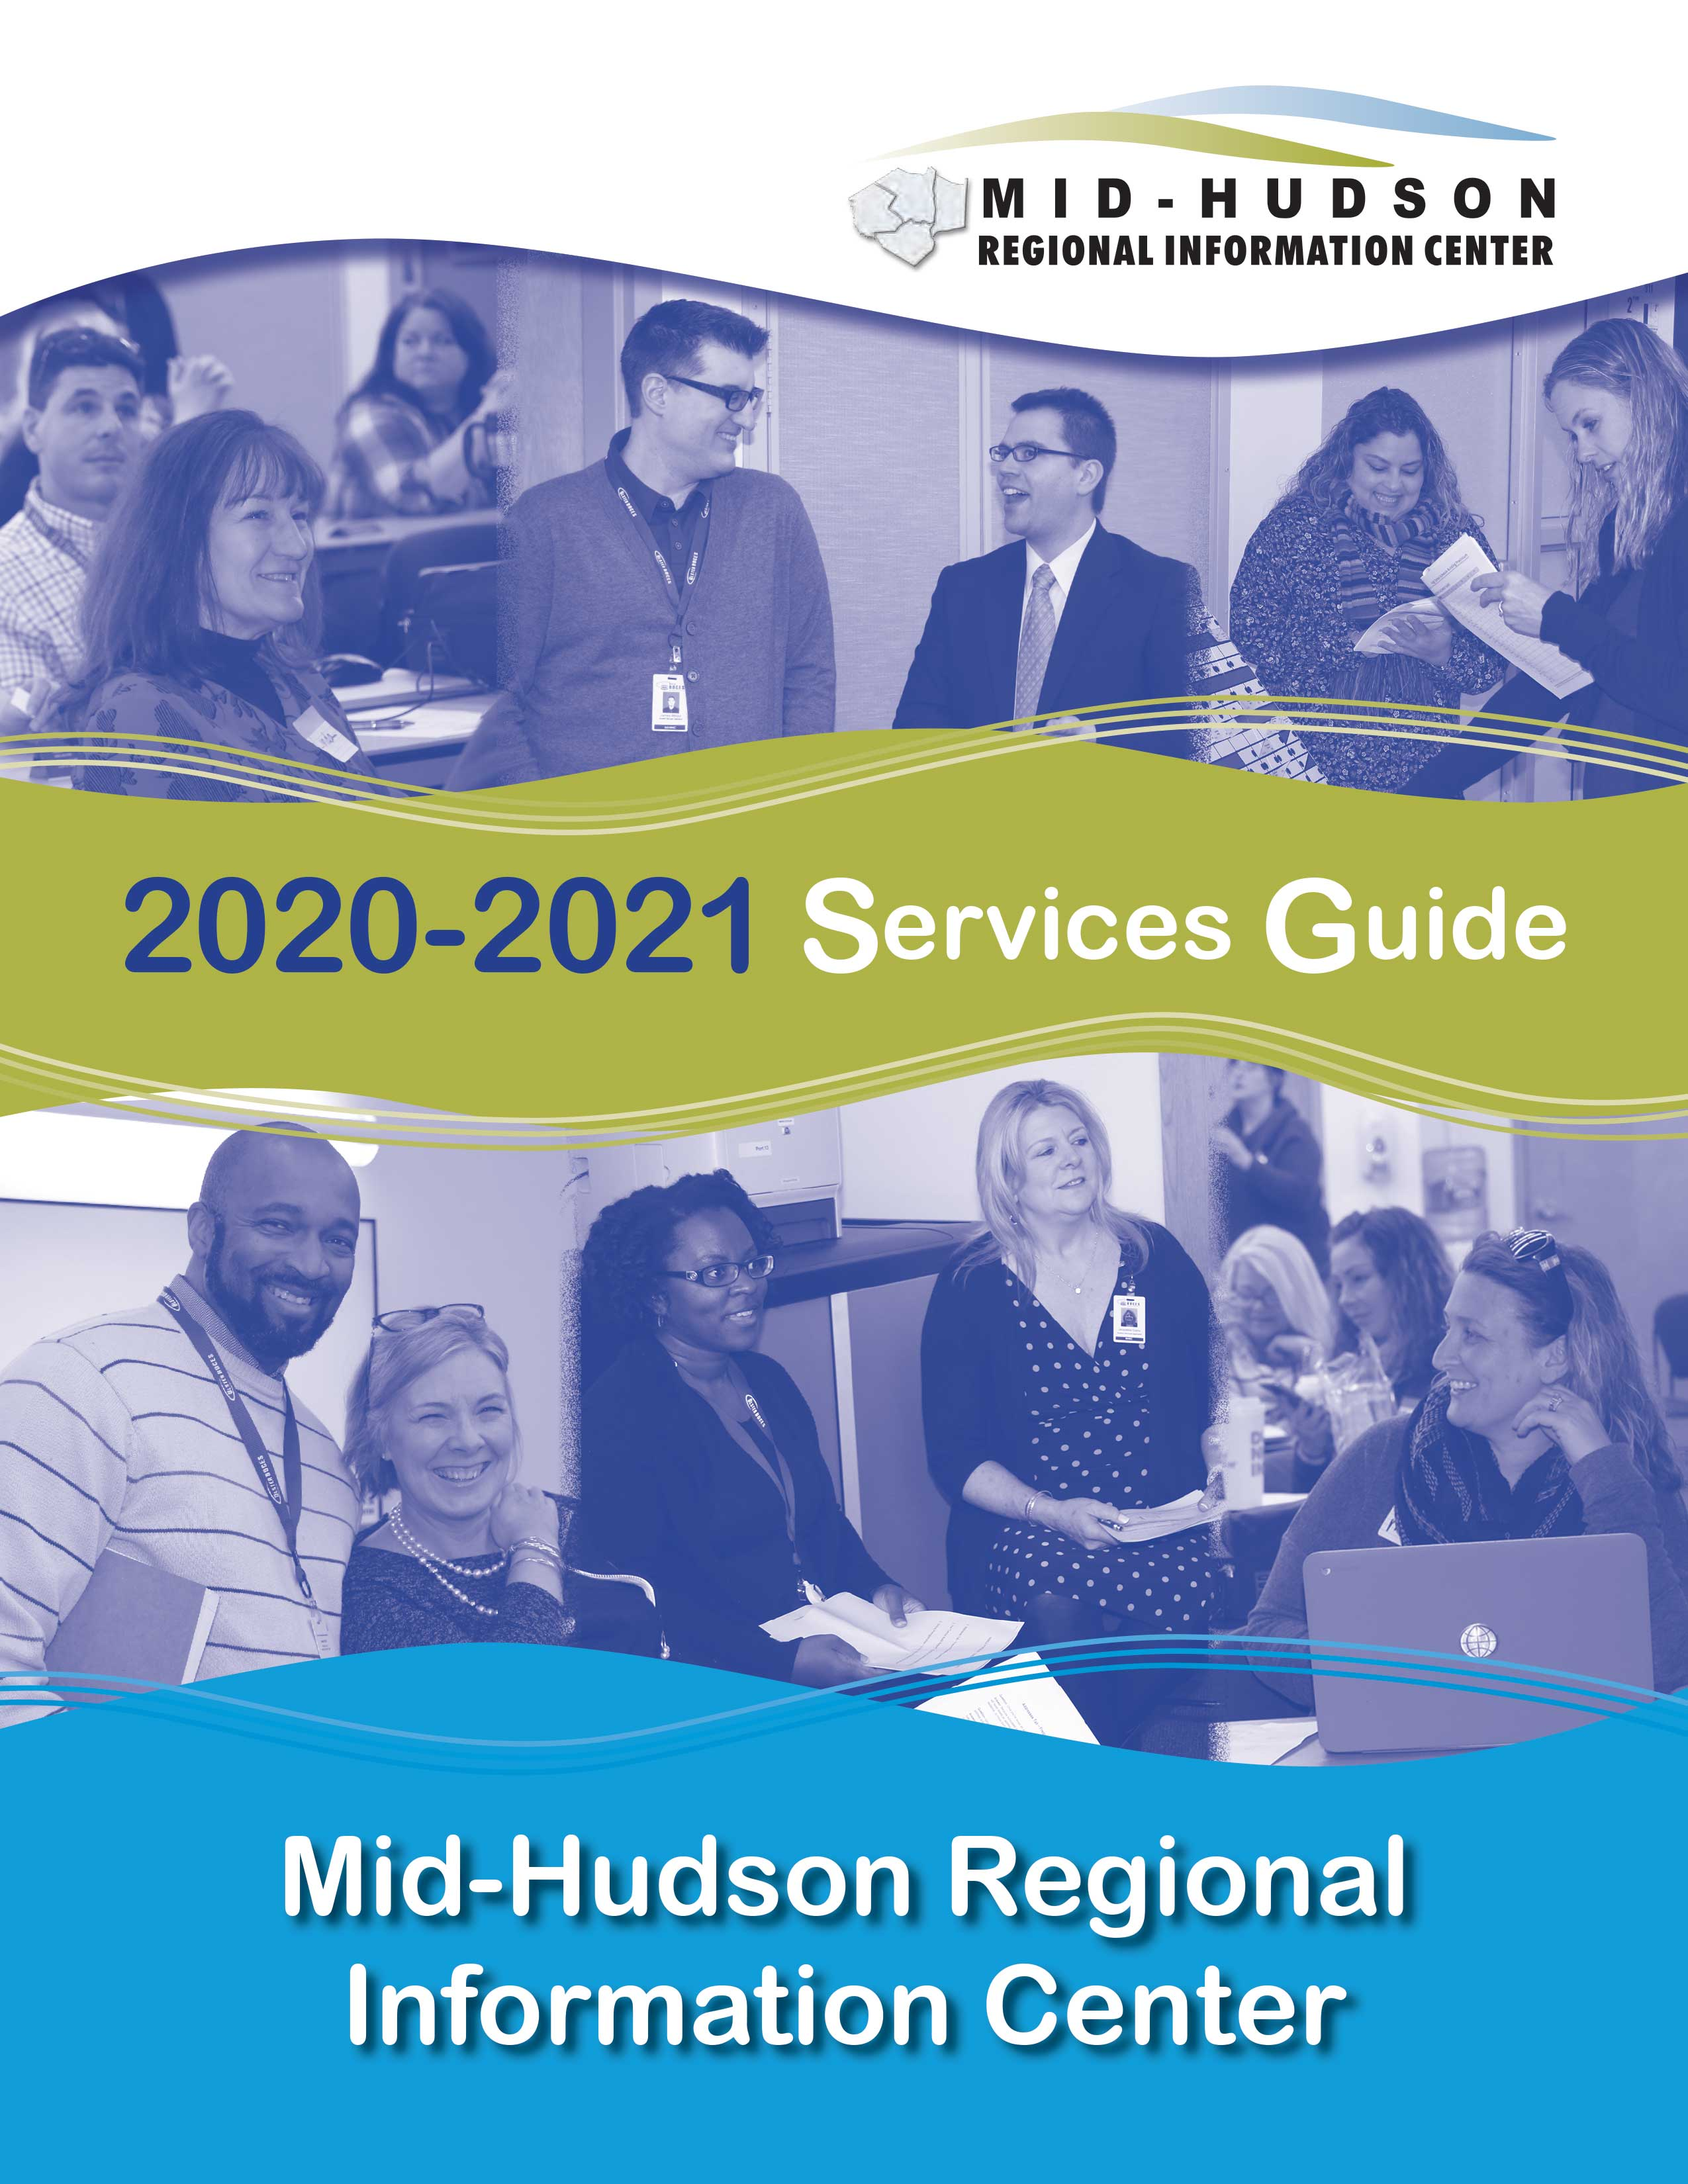 MHRIC Services Guide Cover